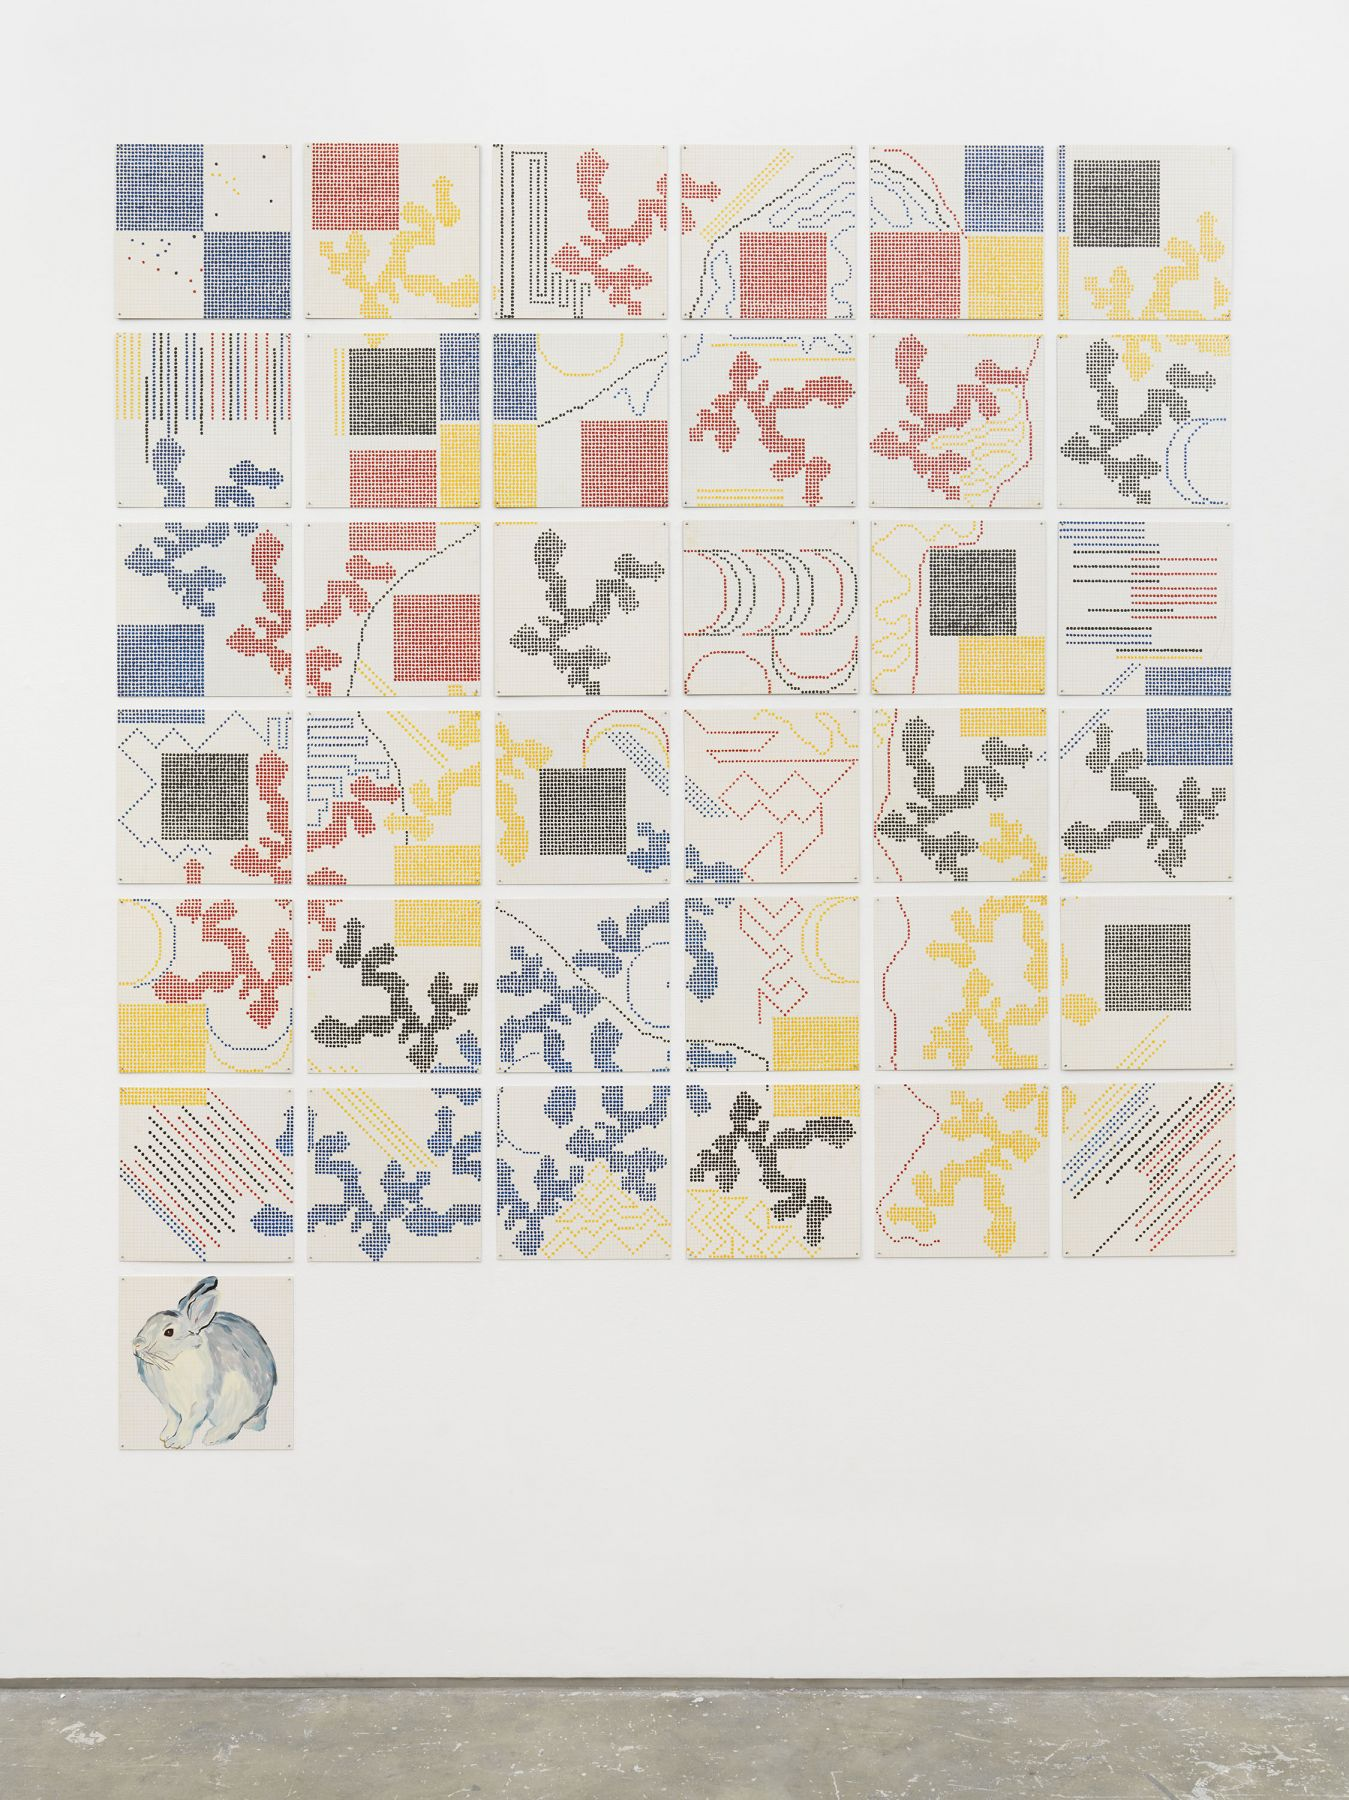 enamel tiles forming a formalist grid by Jennifer Bartlett